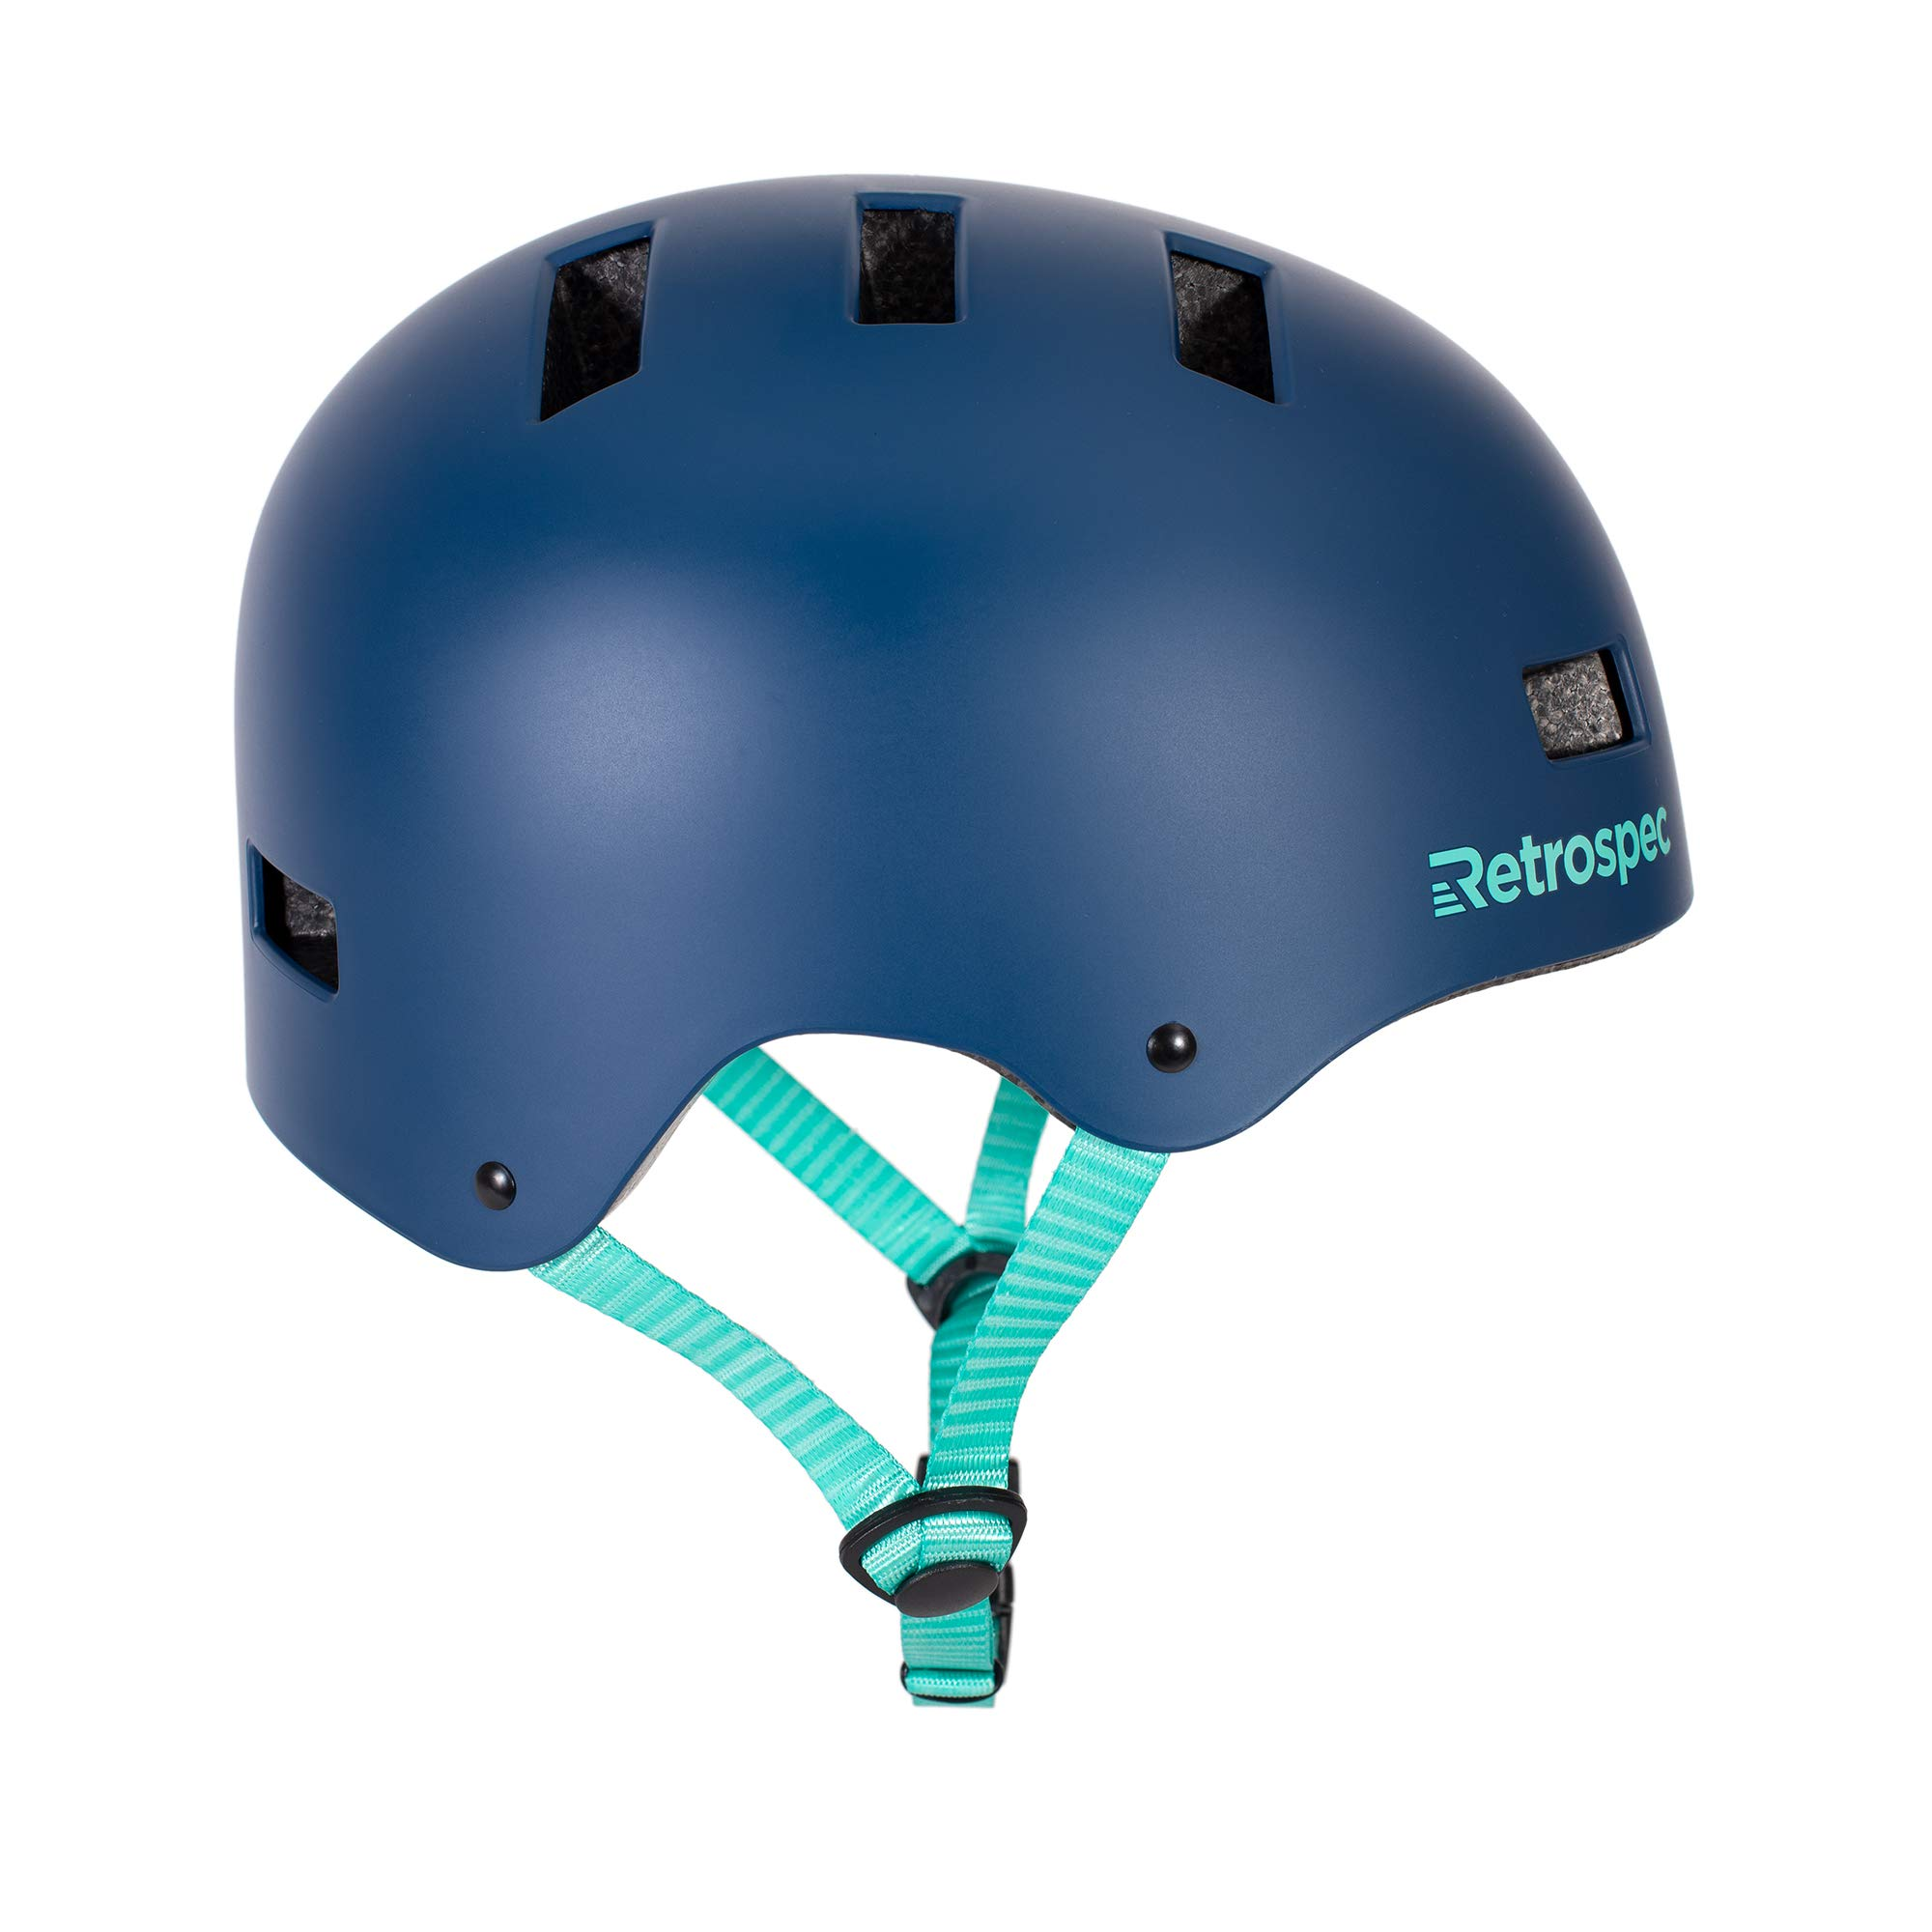 Retrospec CM-1 Bicycle / Skateboard Helmet for Adult CPSC Certified Commuter, Bike, Skate, Matte Midnight Blue, Small: 51-55 cm / 20''-21.75''